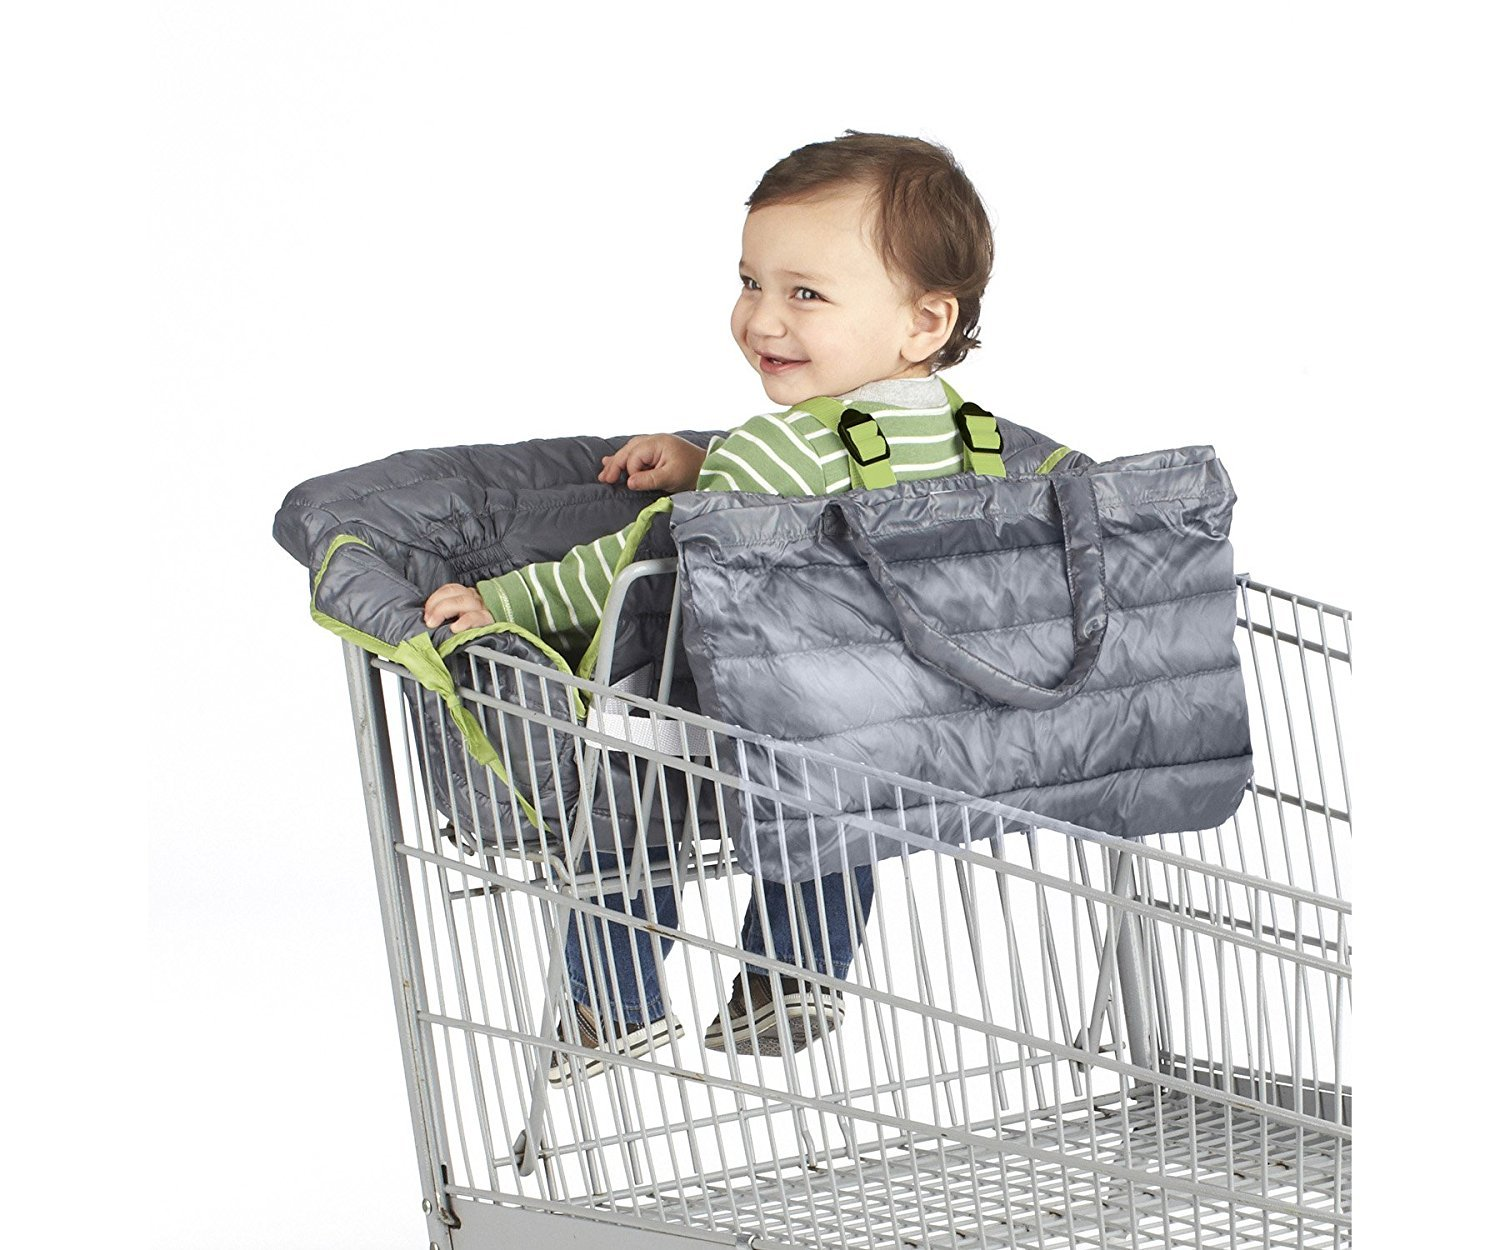 Nuby 2-in-1 Universal Size Quilted Shopping Cart and High Chair Cover, Grey by Nuby (Image #2)